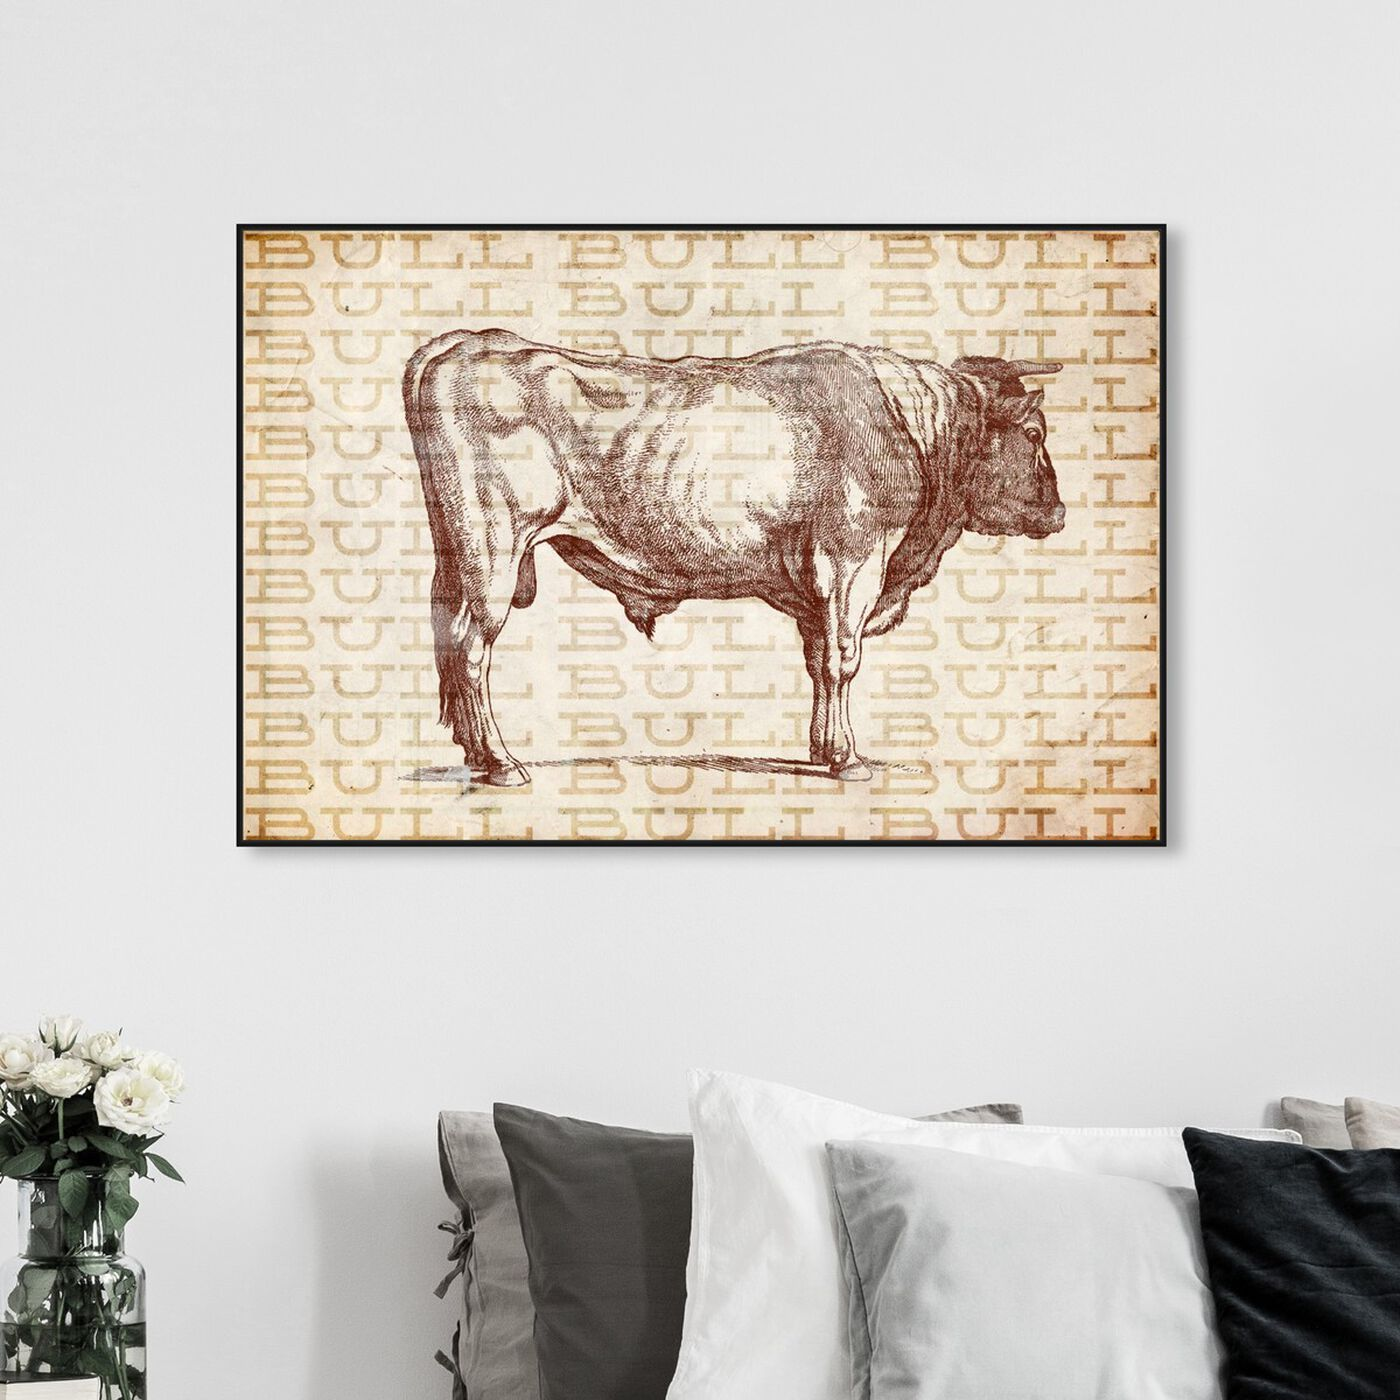 Hanging view of Bull featuring animals and farm animals art.